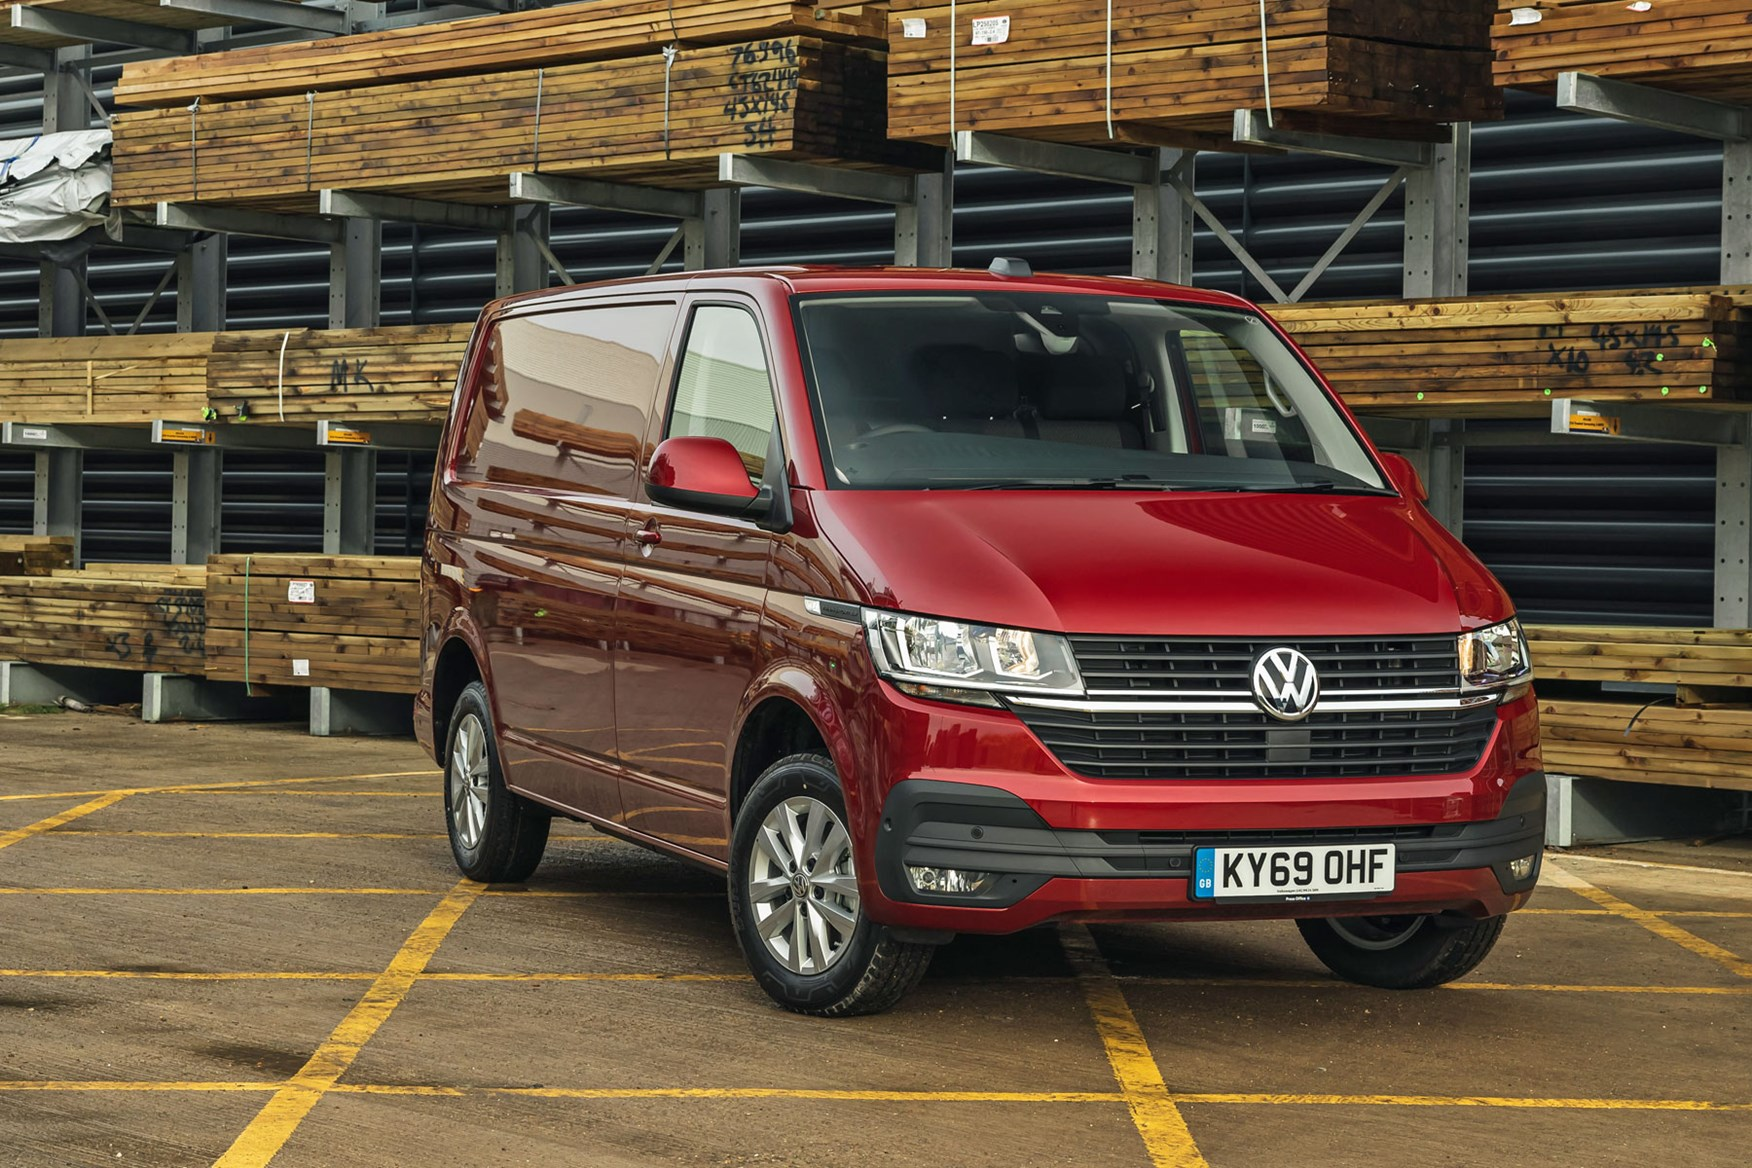 Volkswagen Transporter review, T6.1, 2020, red, front view